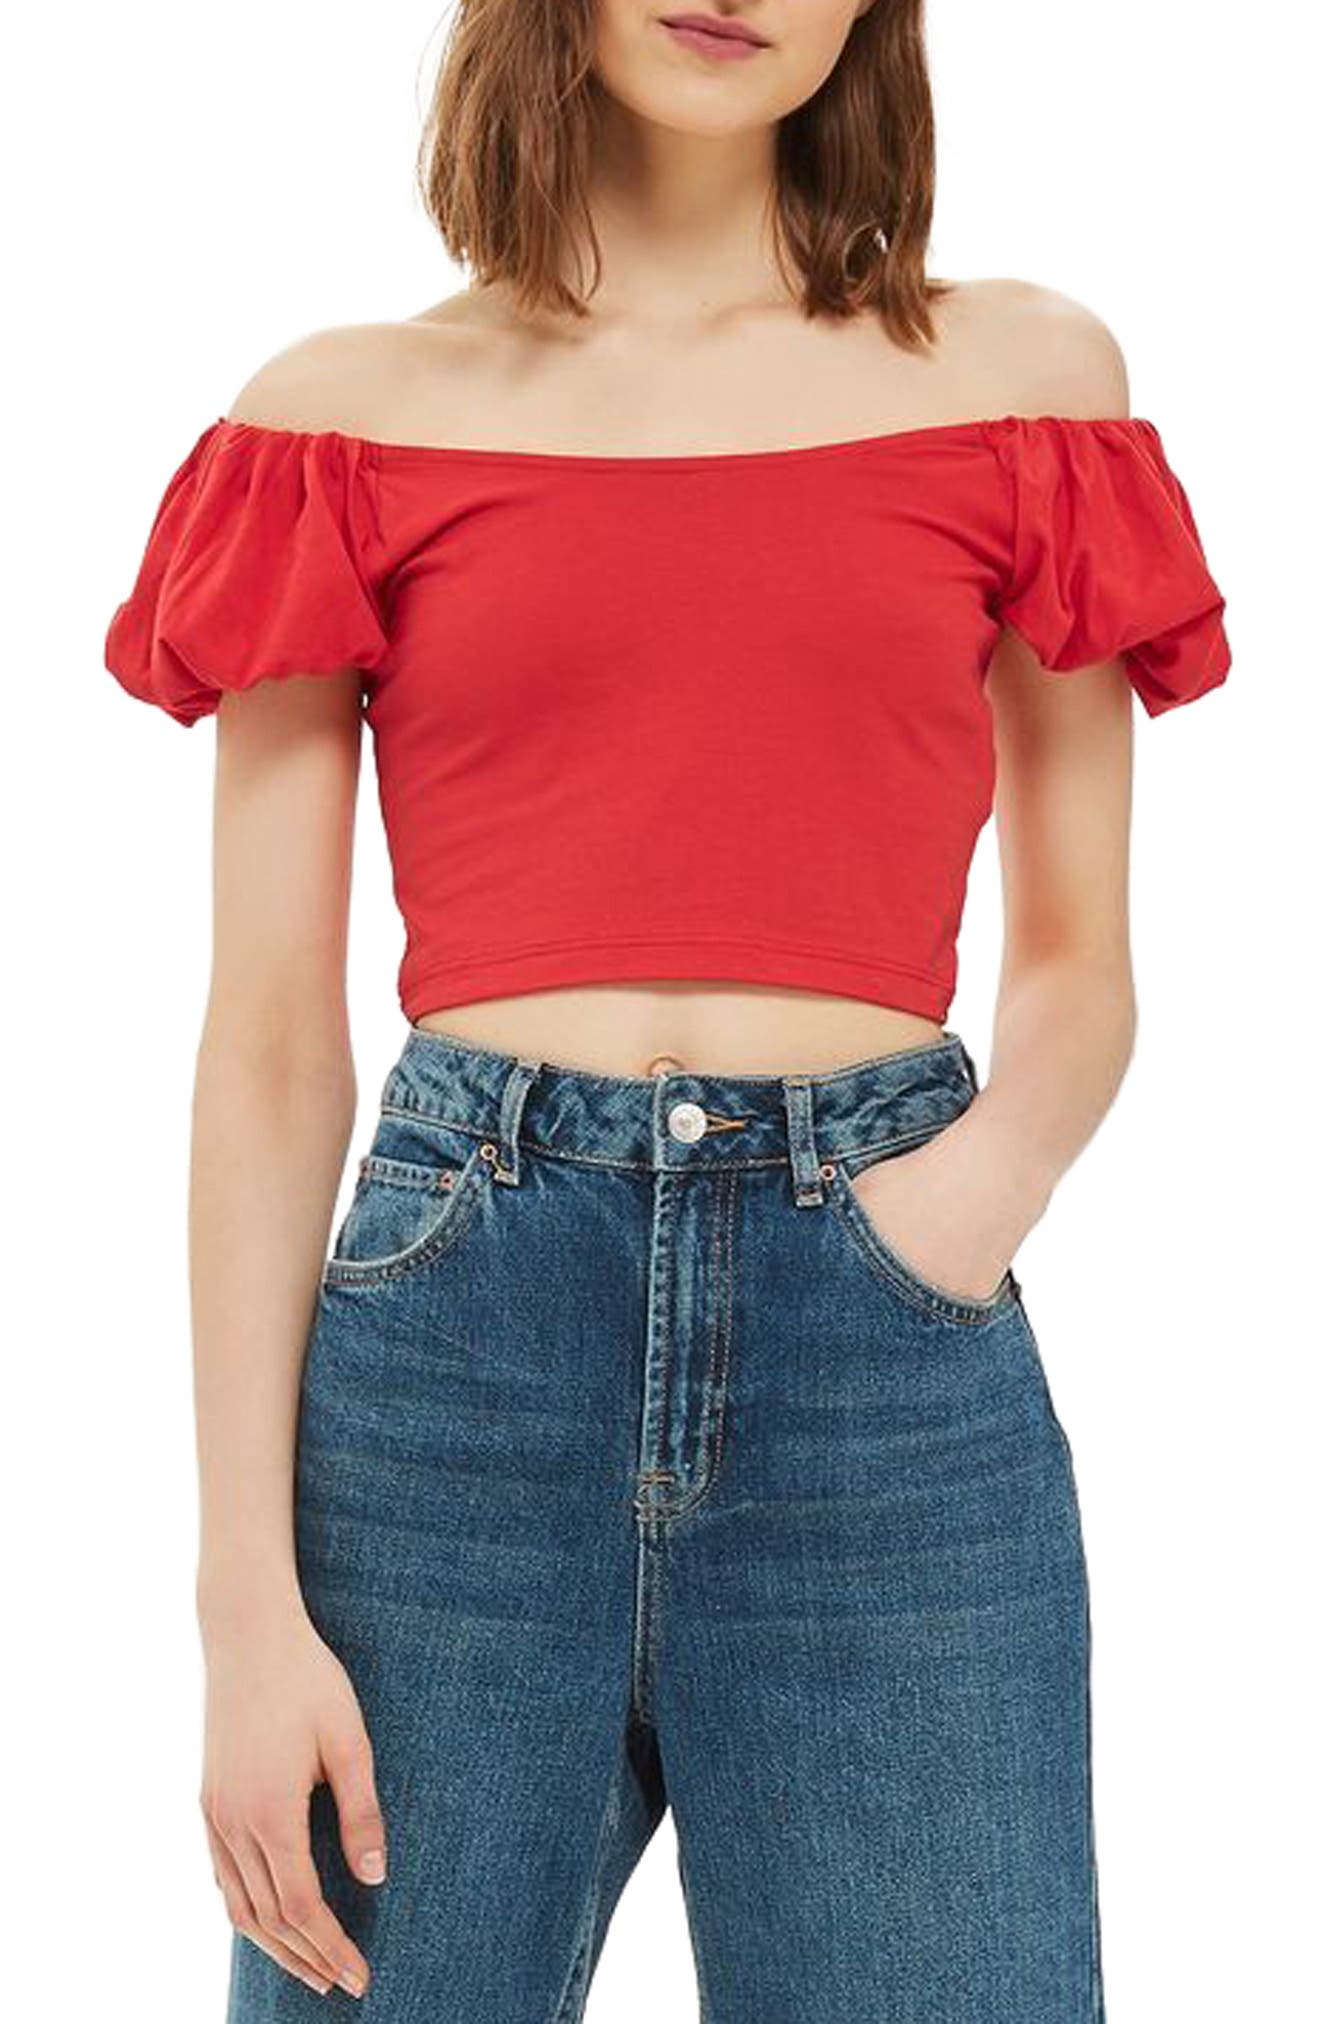 Topshop Bubble Off the Shoulder Crop Top